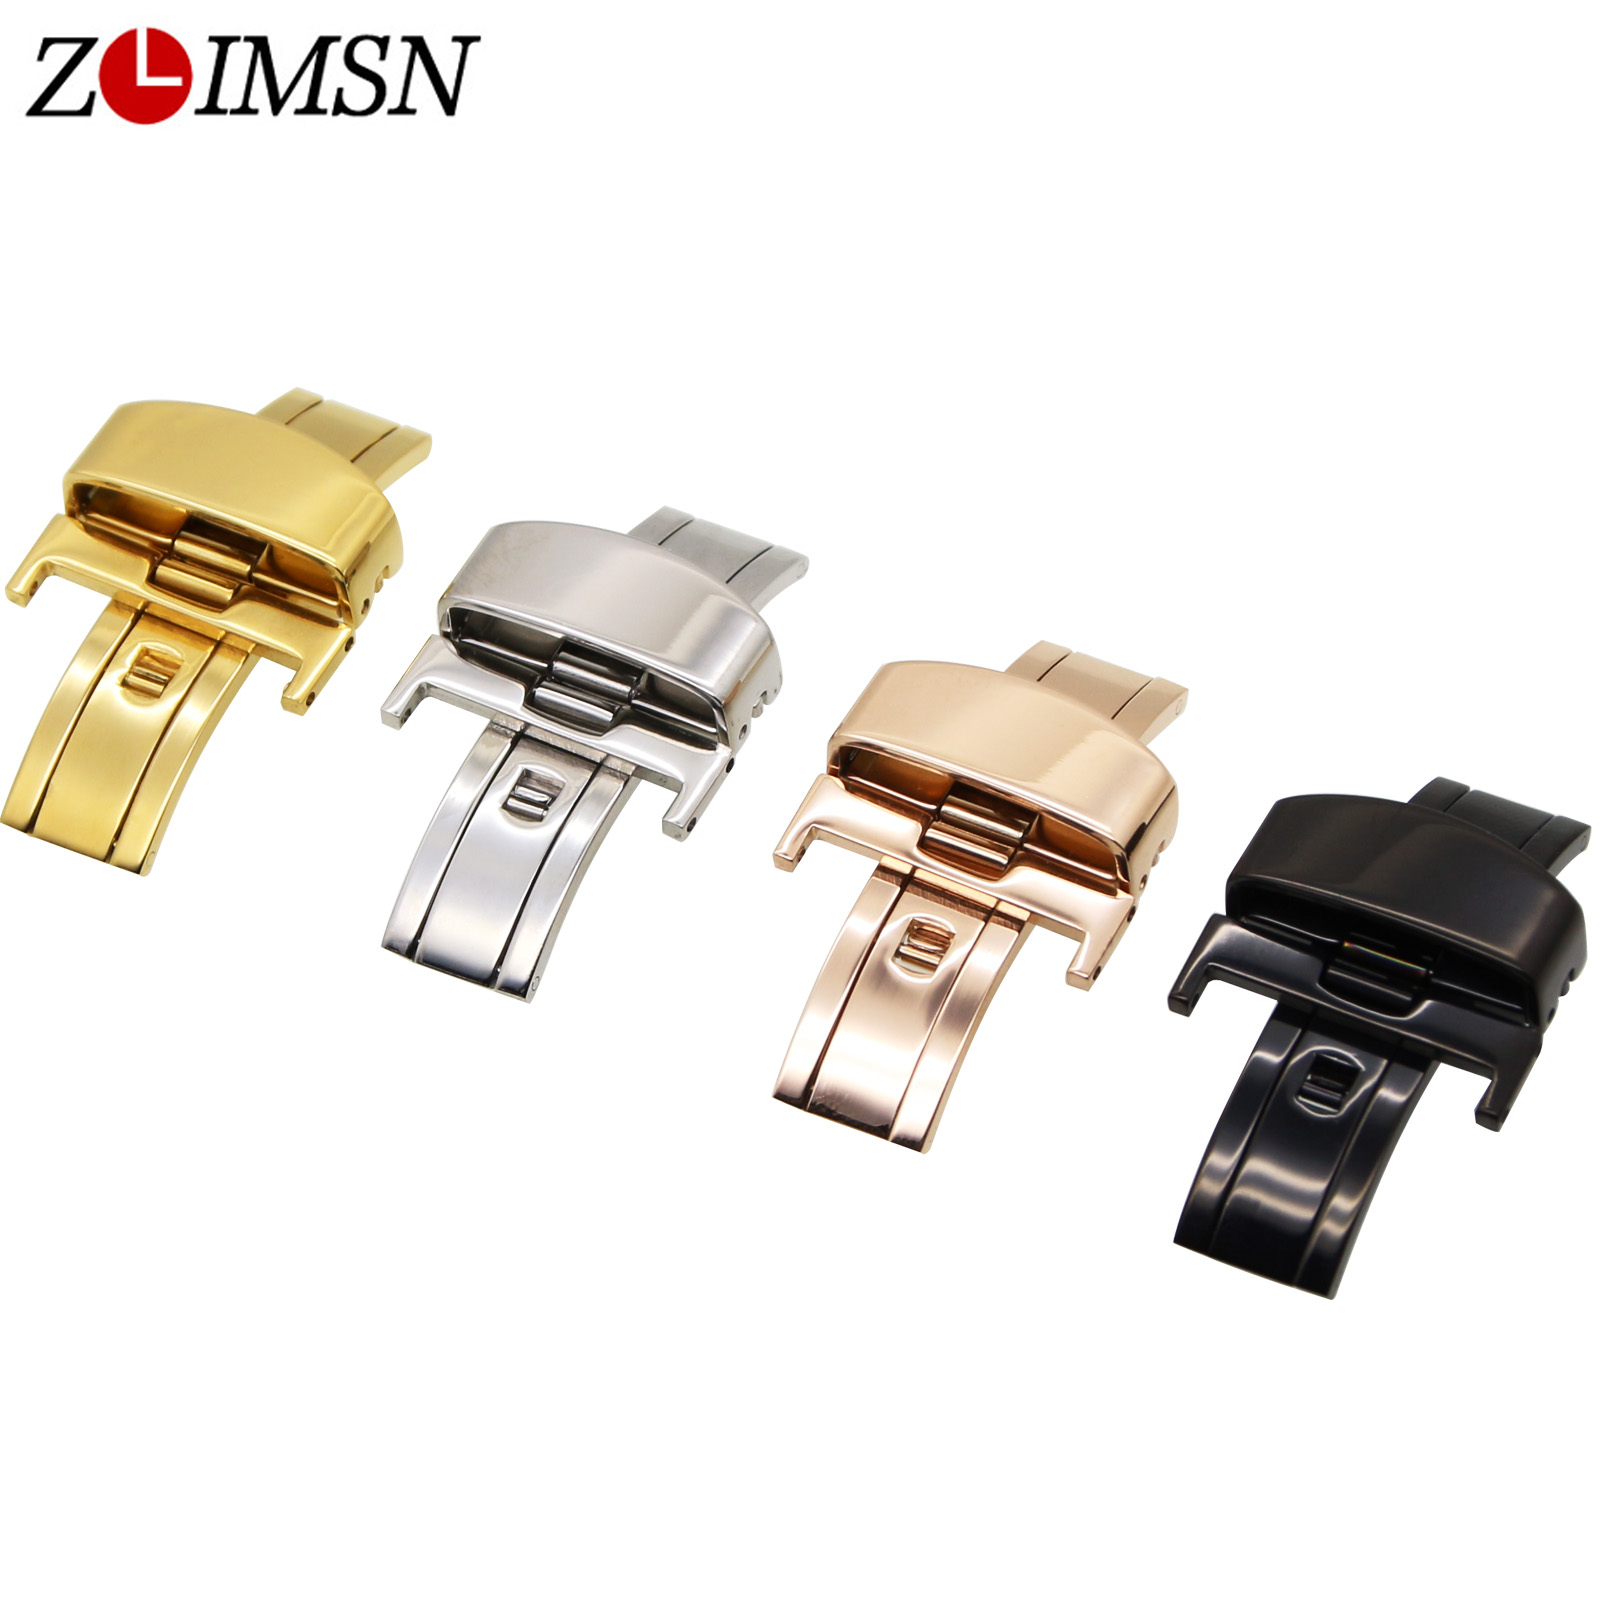 ZLIMSN 12 14 16 18 20 22mm50pcs Stainless Steel Butterfly Buckle Watchband Clasp Black Gold Silver Replacement Relogio Masculino zlimsn silver bracelet solid stainless steel watchband 18 20 22 24mm luxury military metal band replacement relogio feminino s15